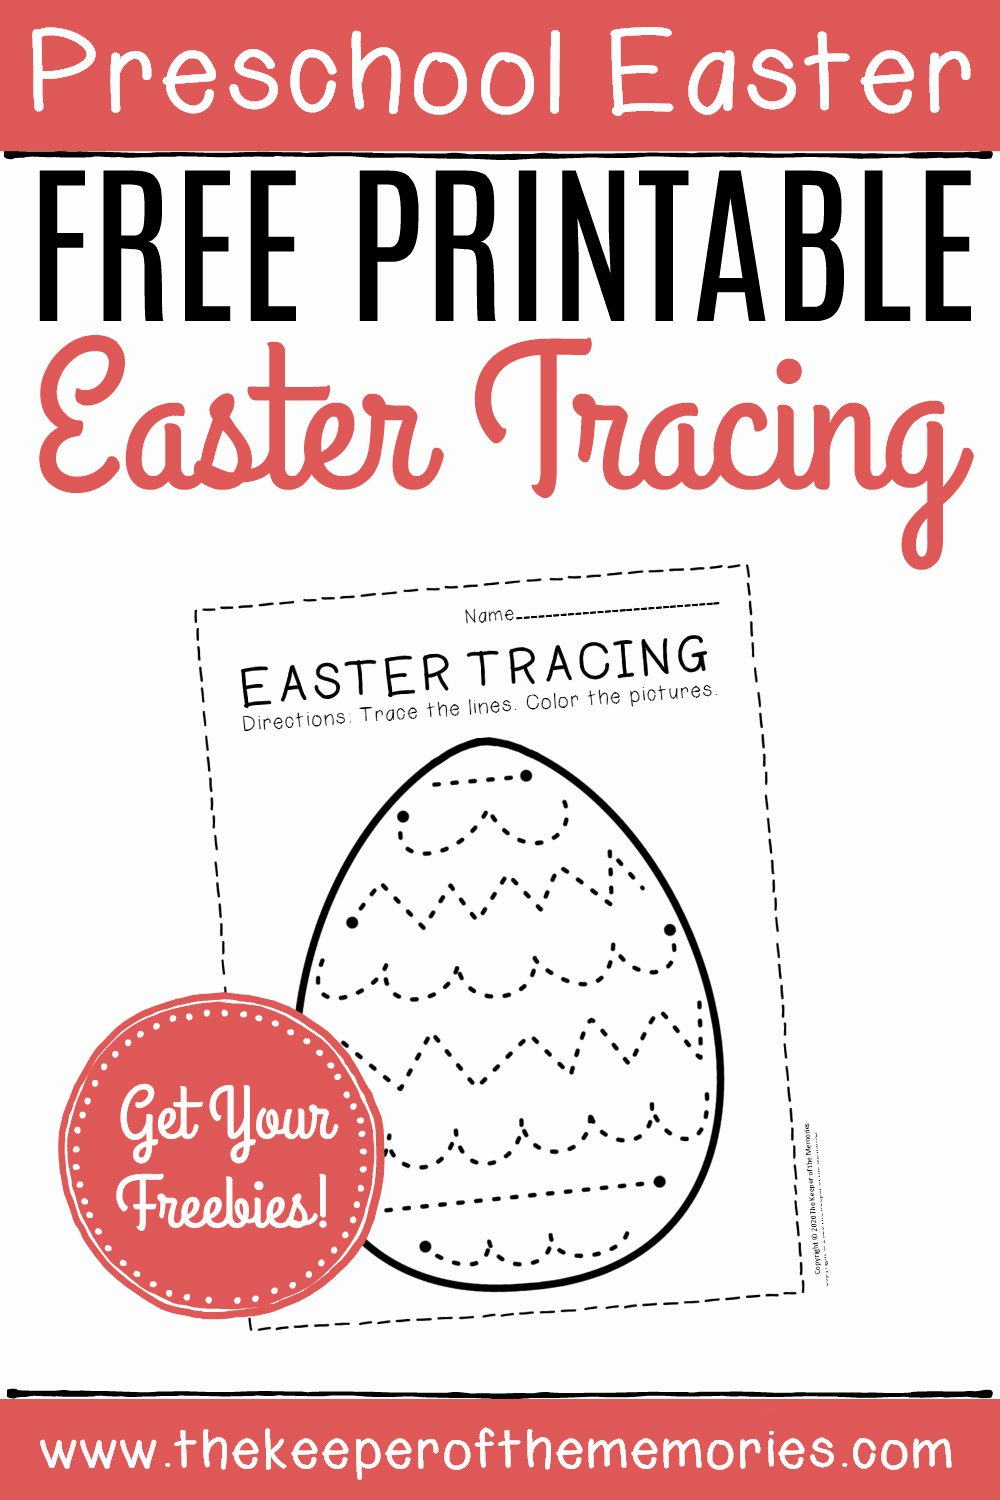 Free Printable Easter Worksheets for Preschoolers Free Free Printable Tracing Easter Preschool Worksheets the